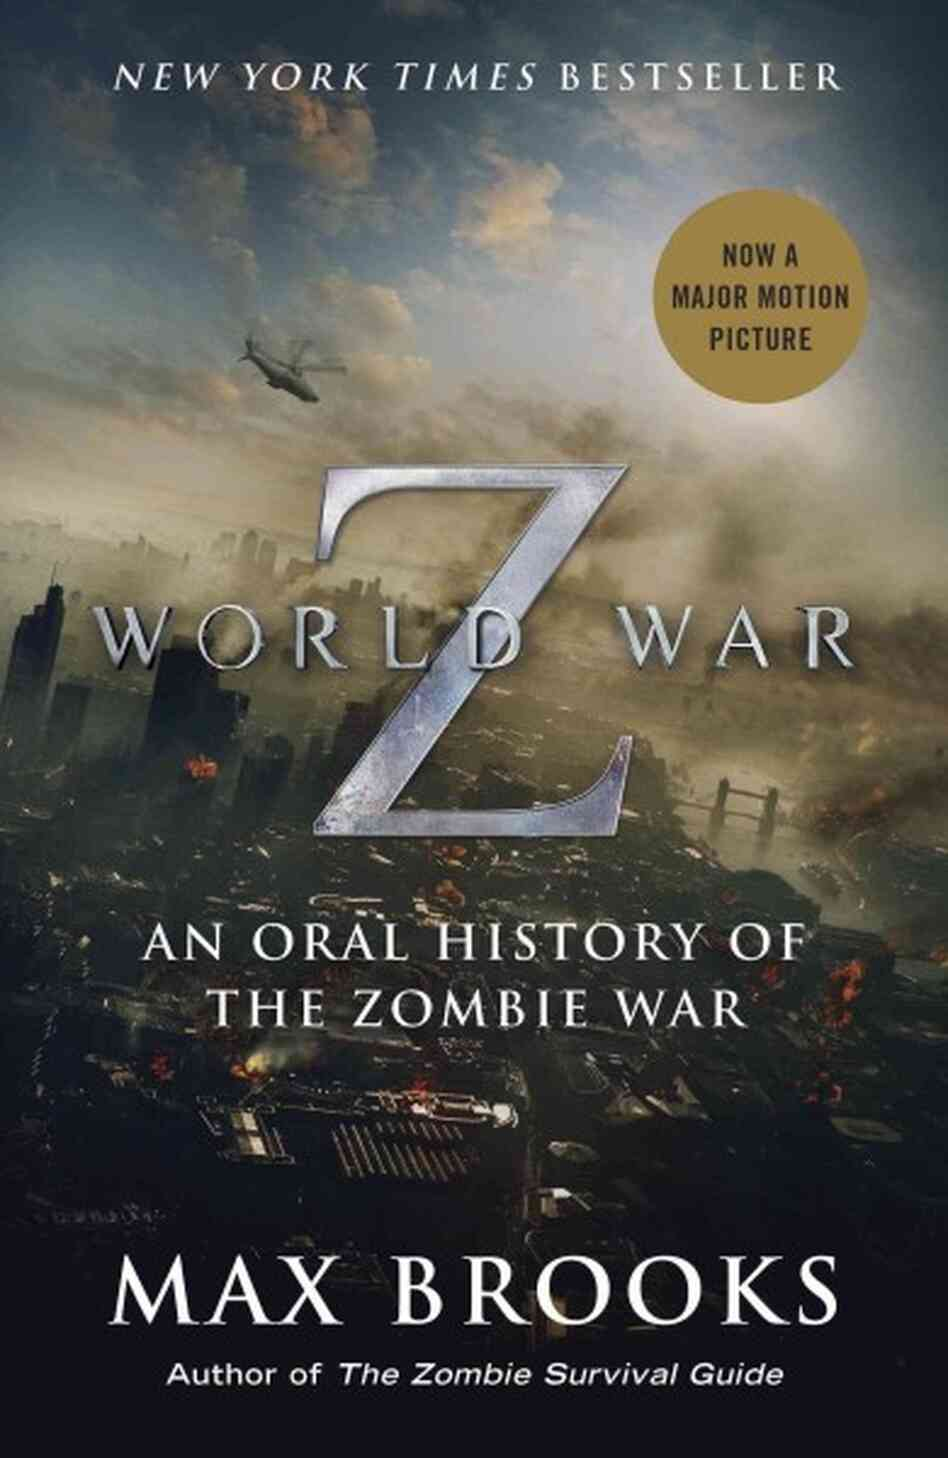 http://media.npr.org/assets/bakertaylor/covers/w/world-war-z/9780770437411_custom-fce8ddae4be8e3e0d627f0fba8047ba779e7f3e4-s6-c30.jpg